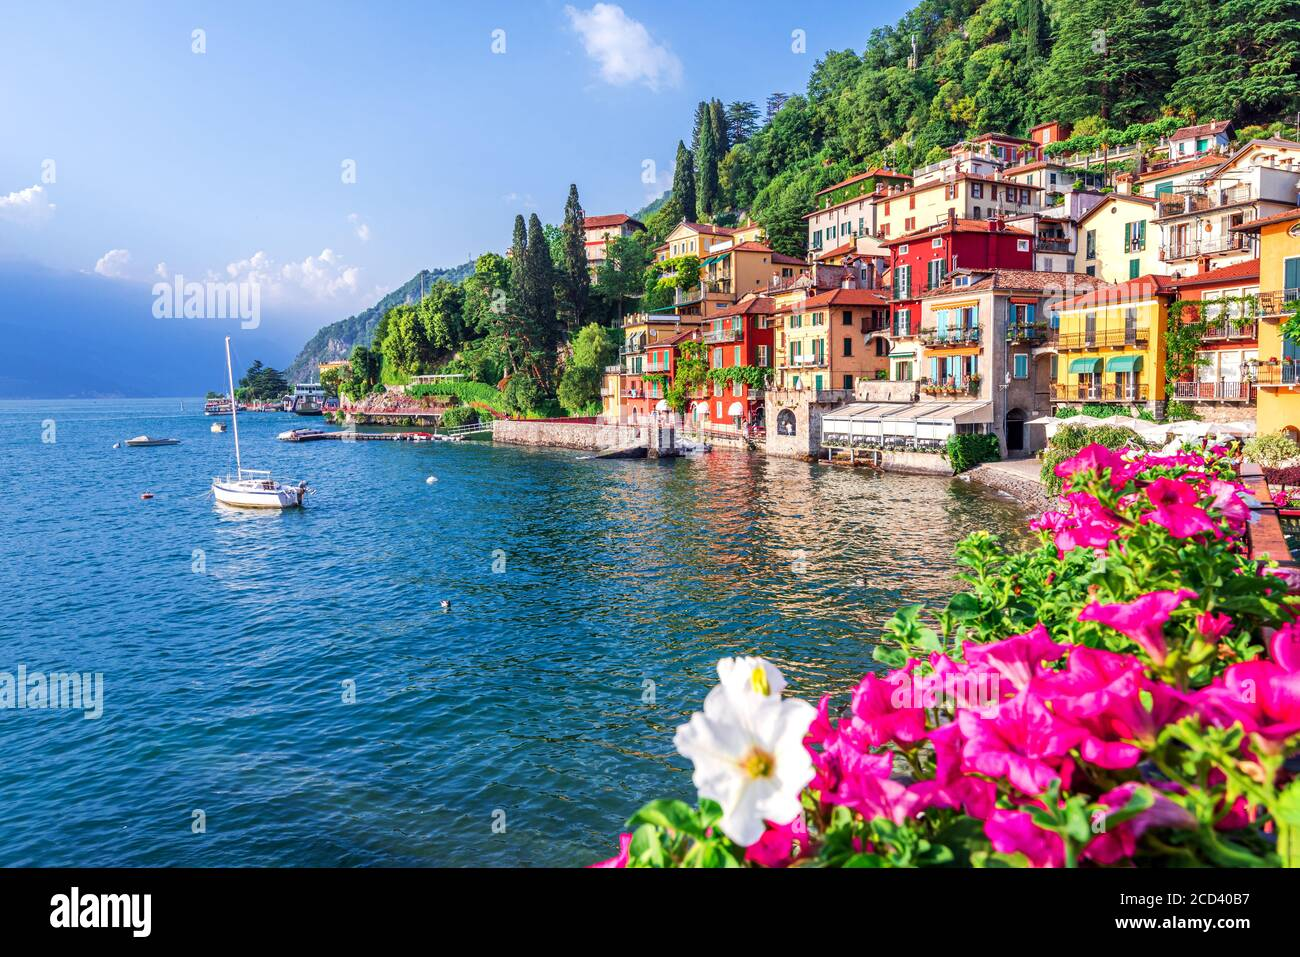 Varenna, Lake Como - Holidays in Italy view of the most beautiful lake in Italy, Lago di Como. Stock Photo